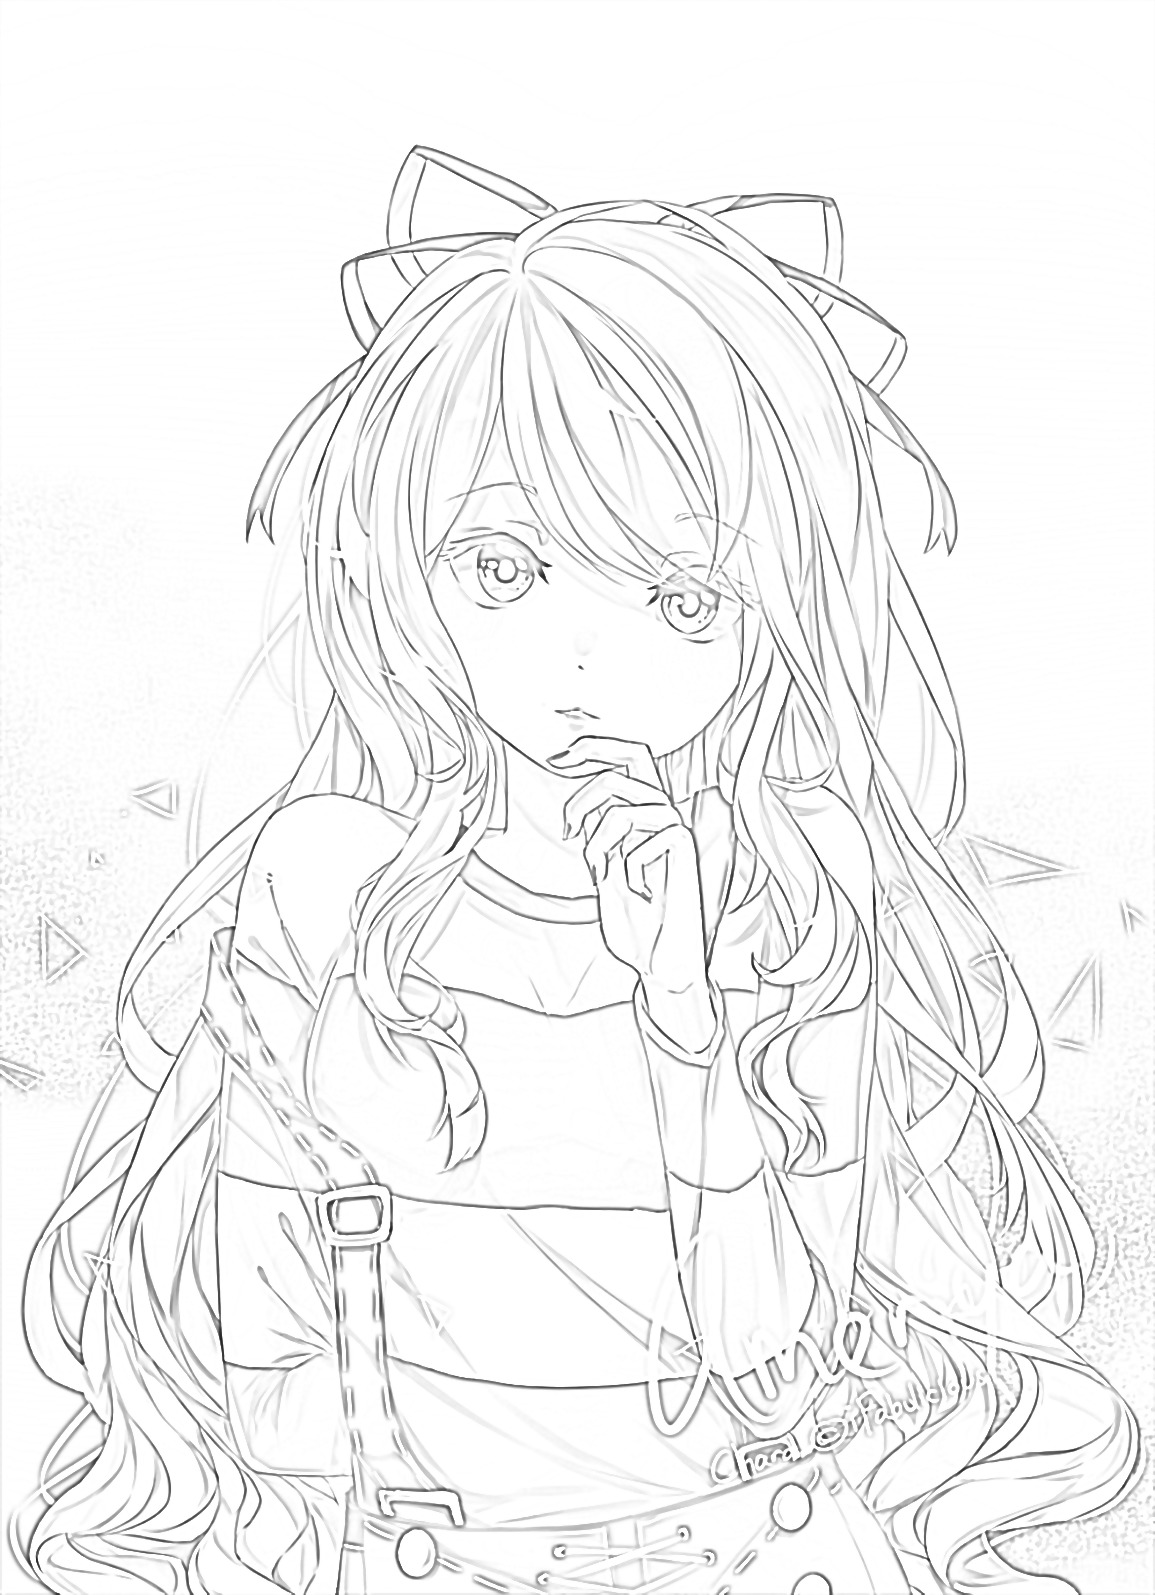 Anime Girl Kawaii Coloring Pages Novocom Top